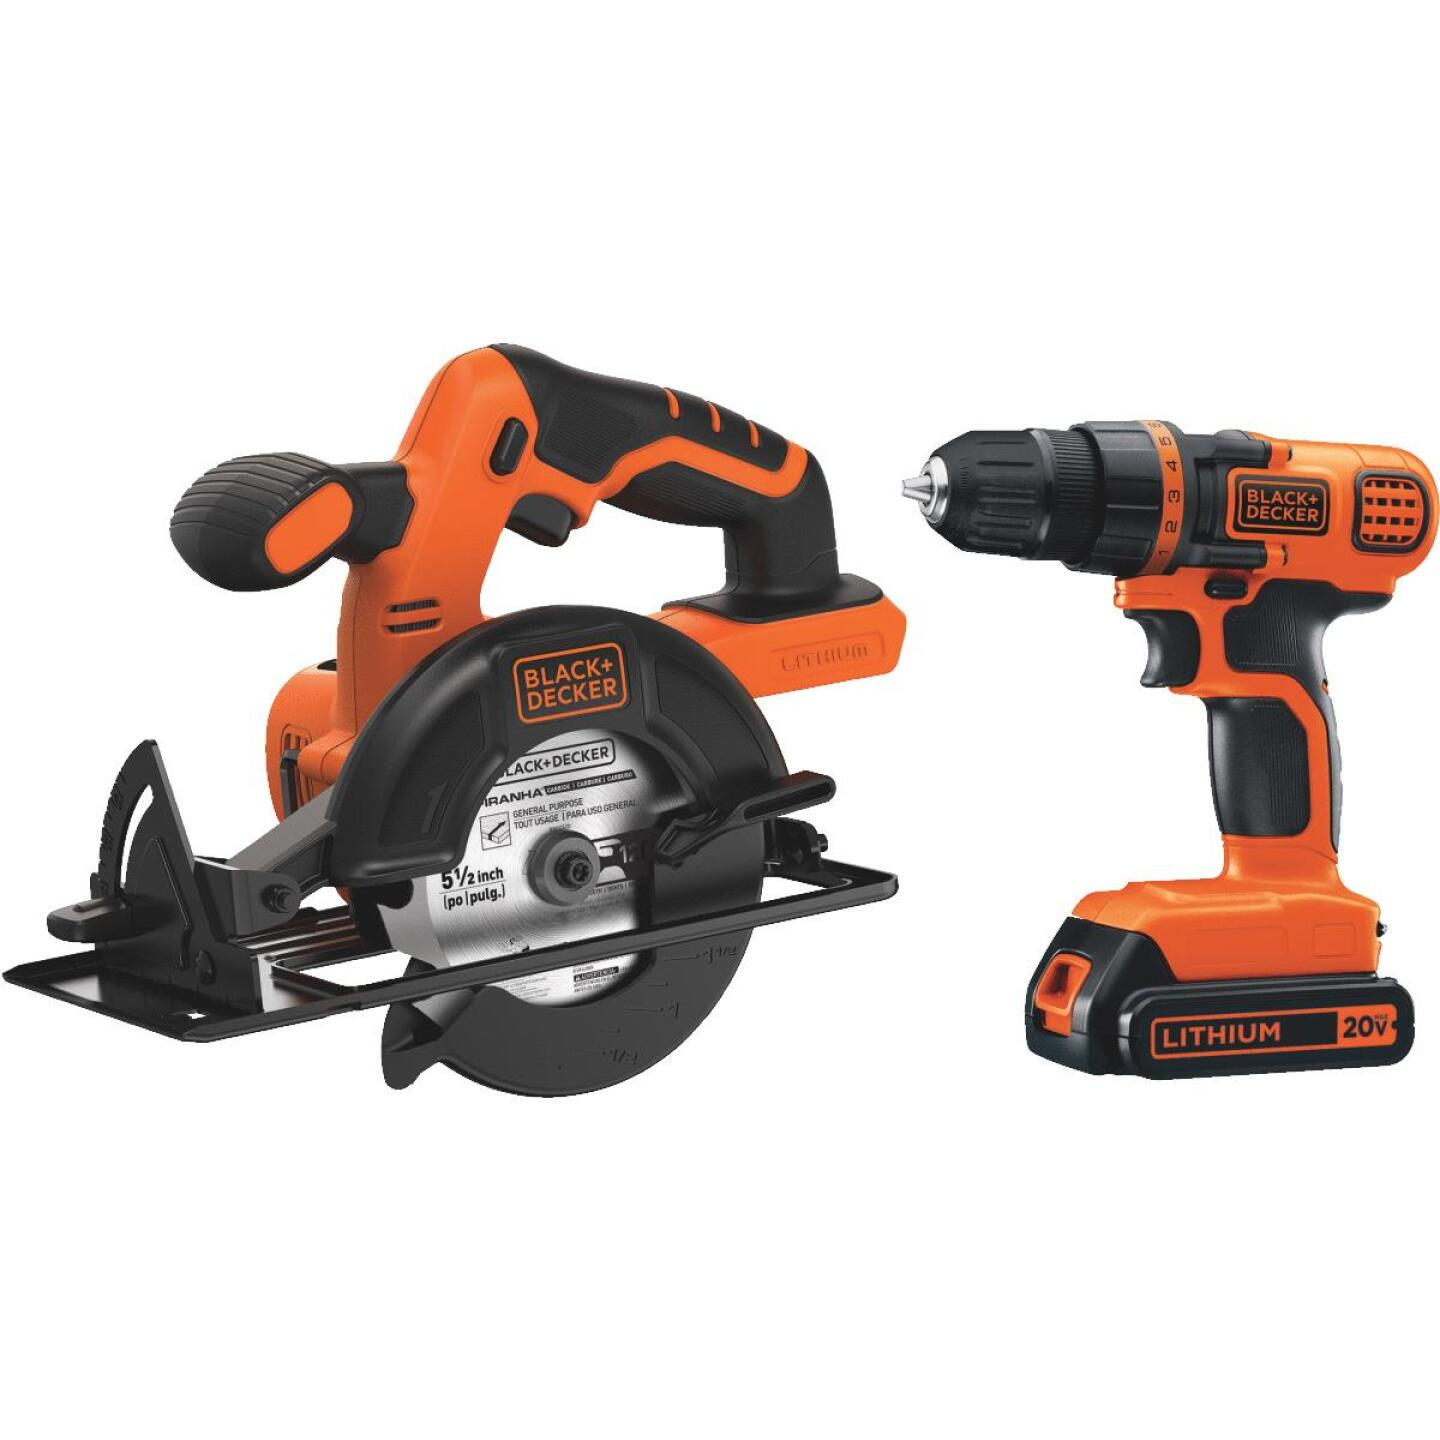 Black & Decker 2-Tool 20V MAX Lithium-Ion Circular Saw & Drill/Driver Cordless Tool Combo Kit Image 1